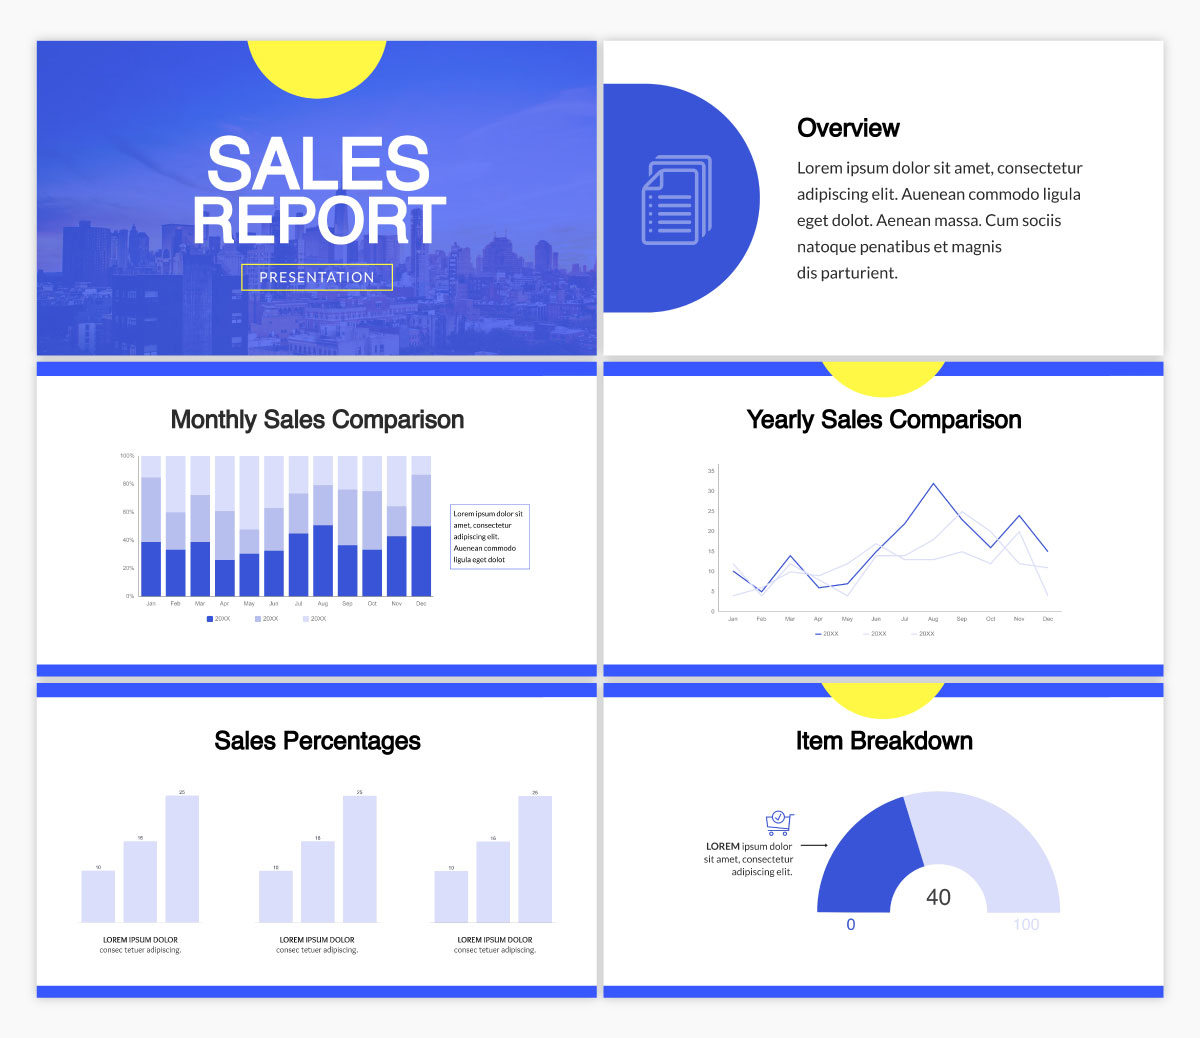 A report presentation template available in Visme.